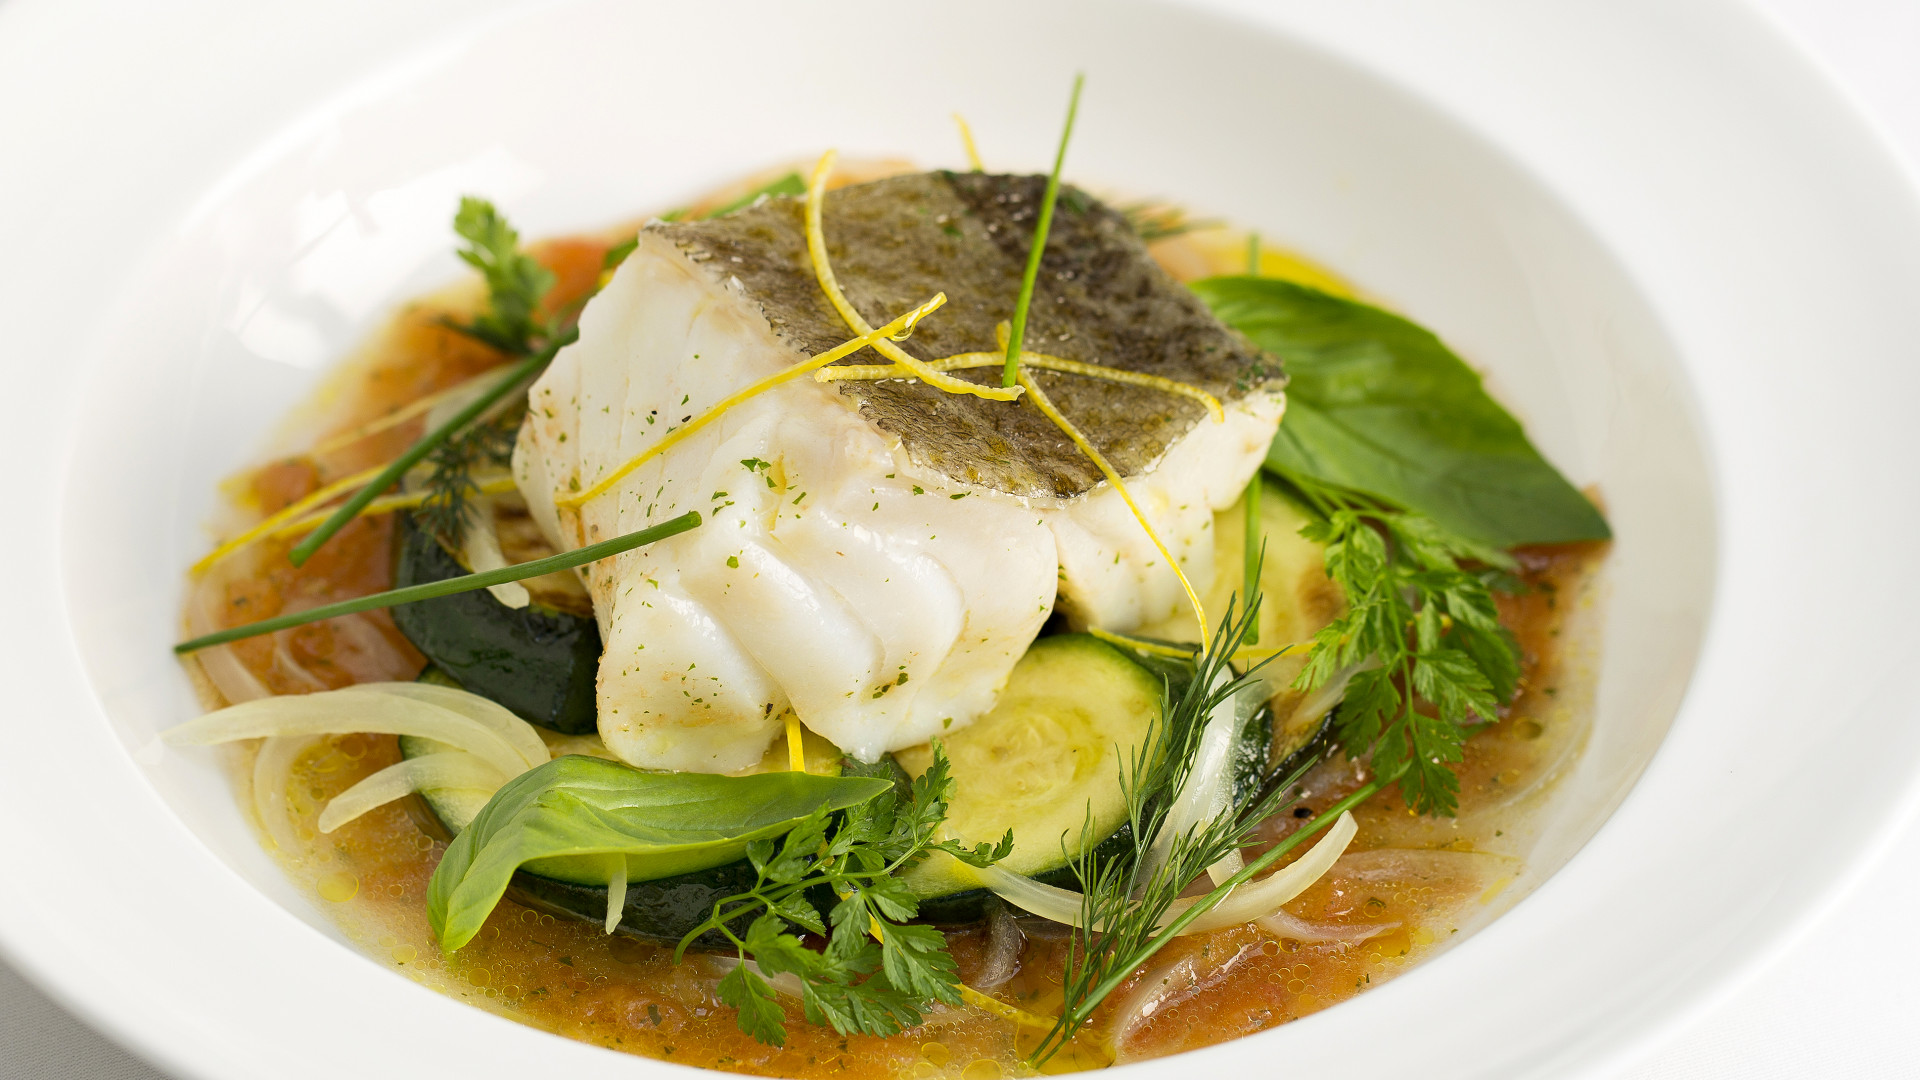 A fish dish at Margot restaurant, London